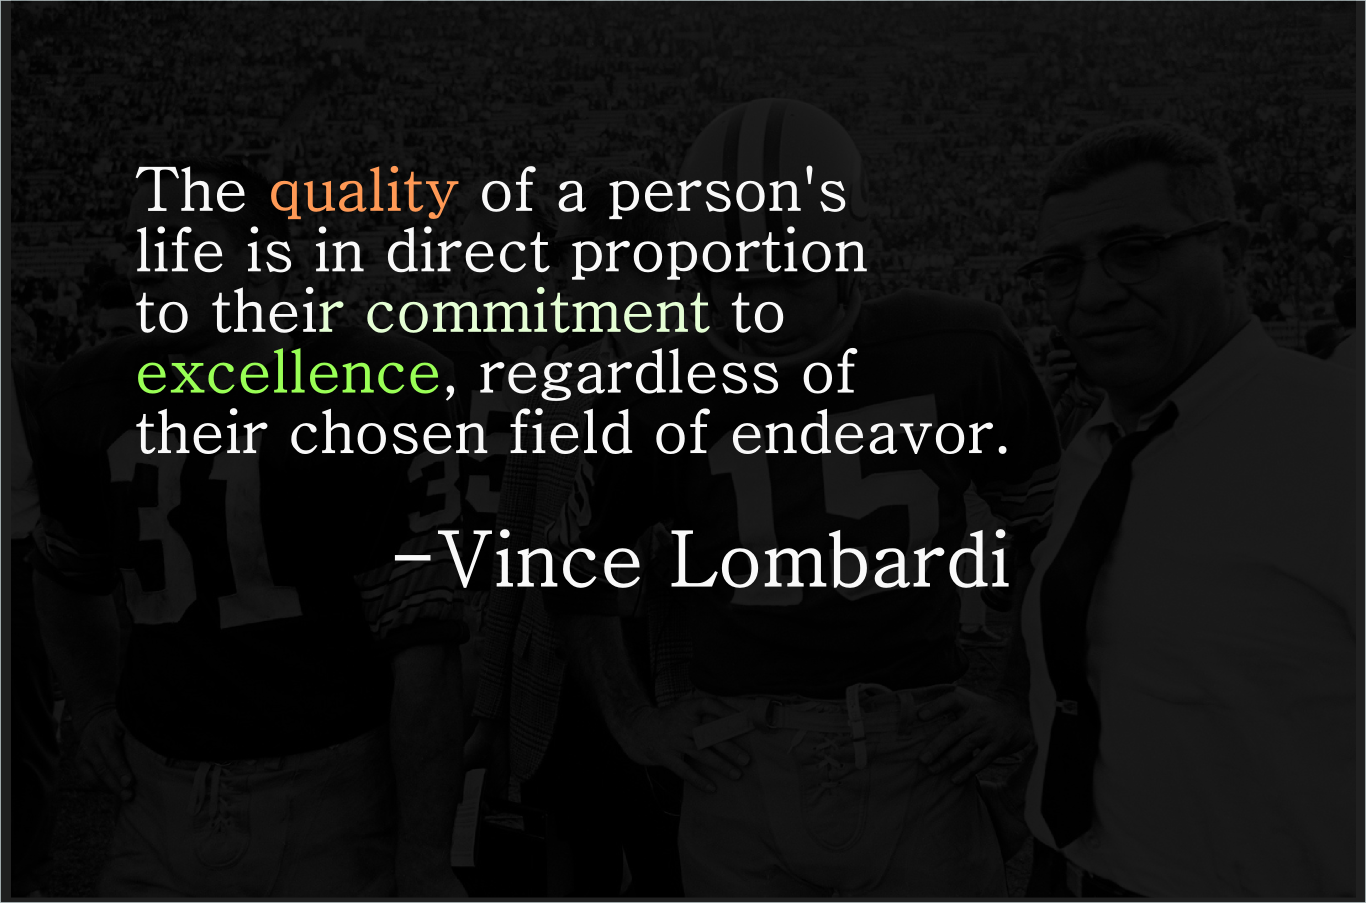 The Quality Of A Person S Life Vince Lombardi 1366x903